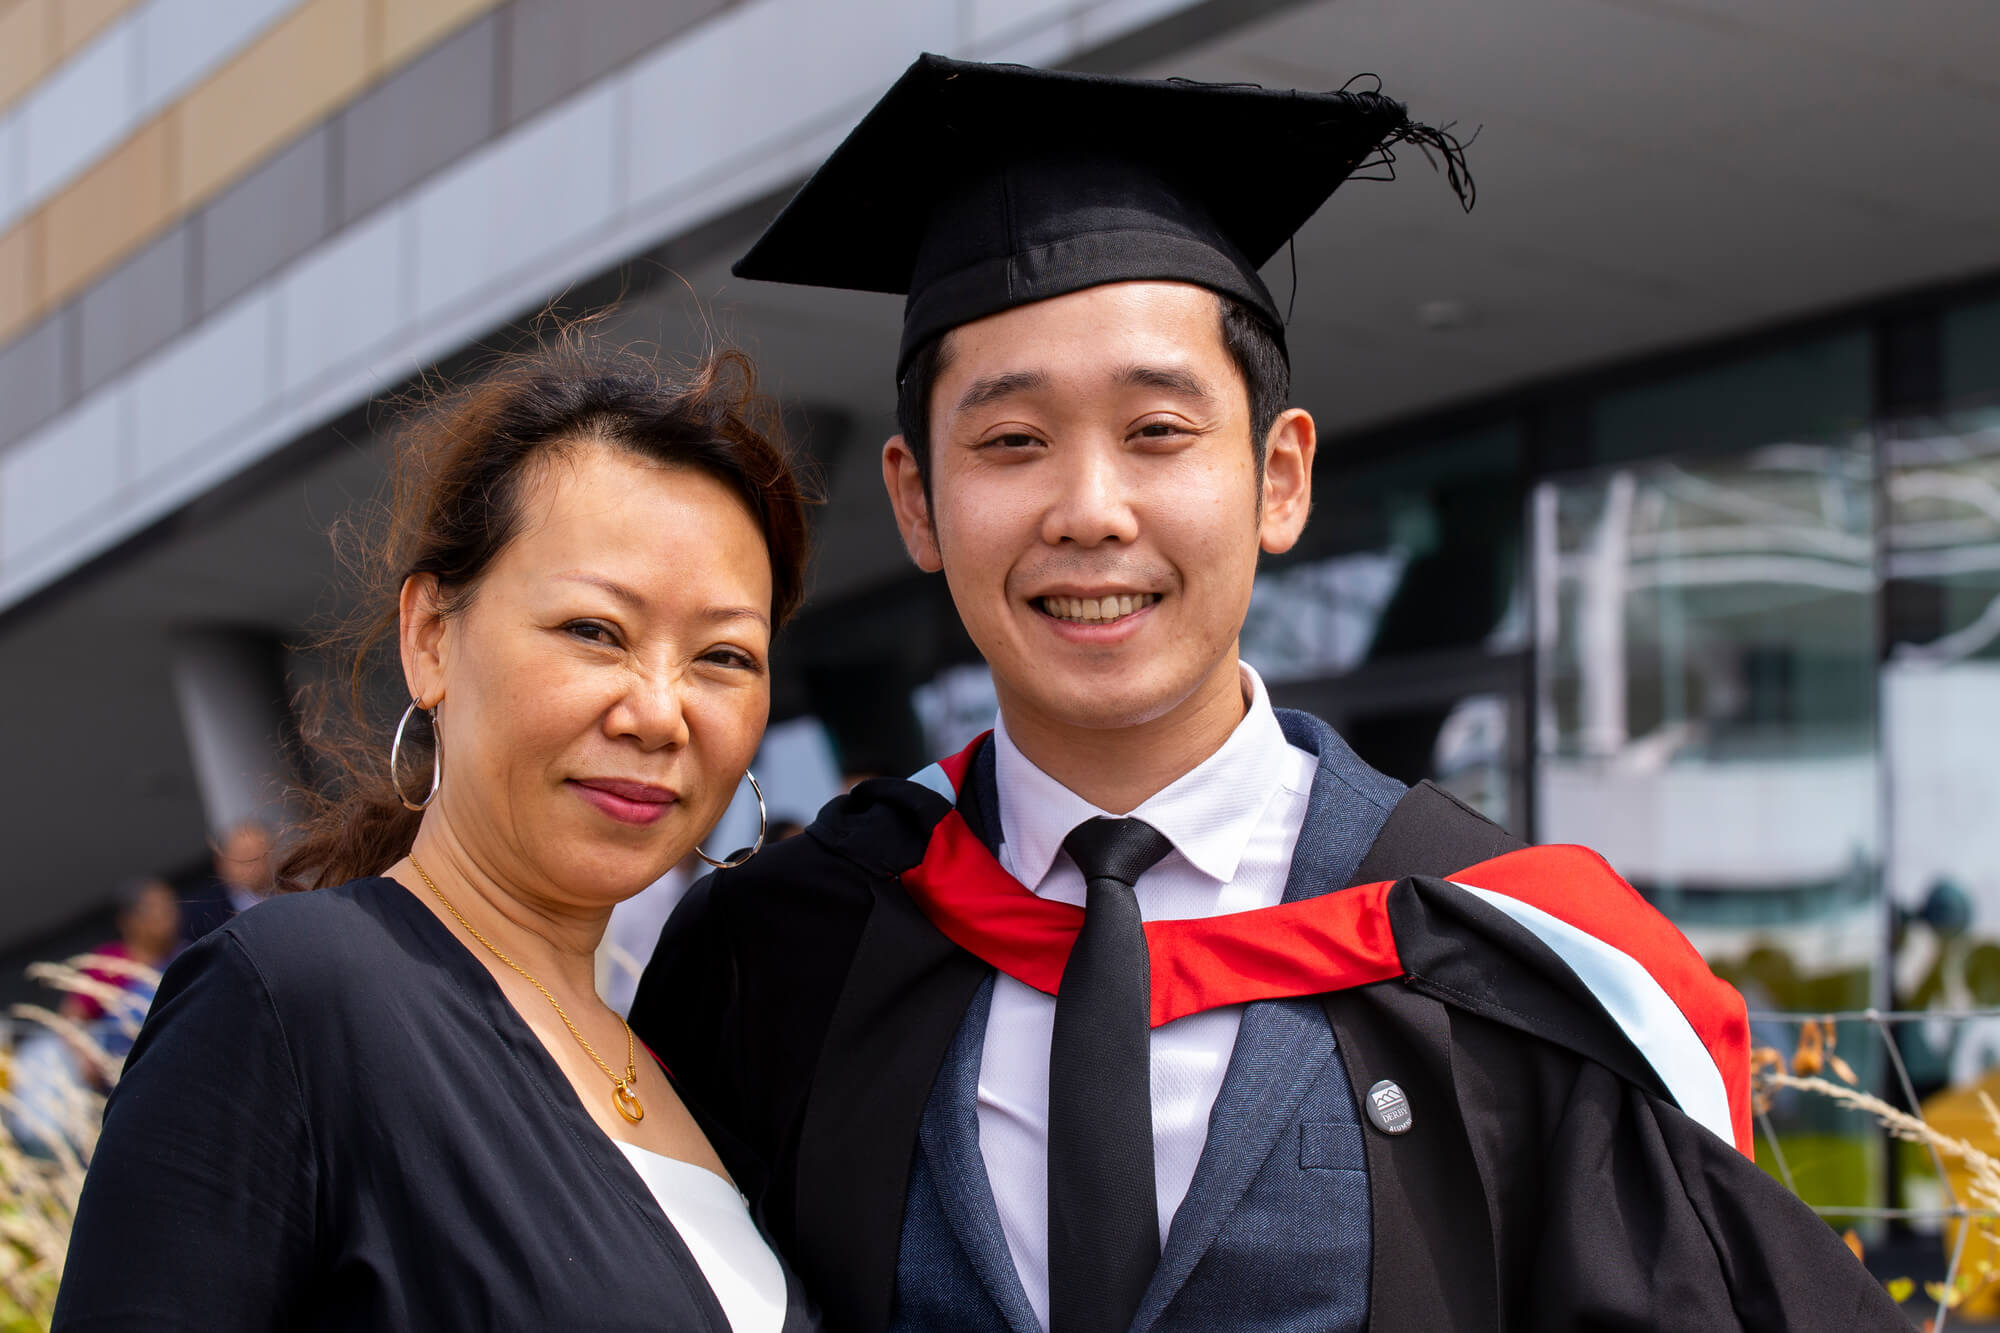 A student and parent at graduation